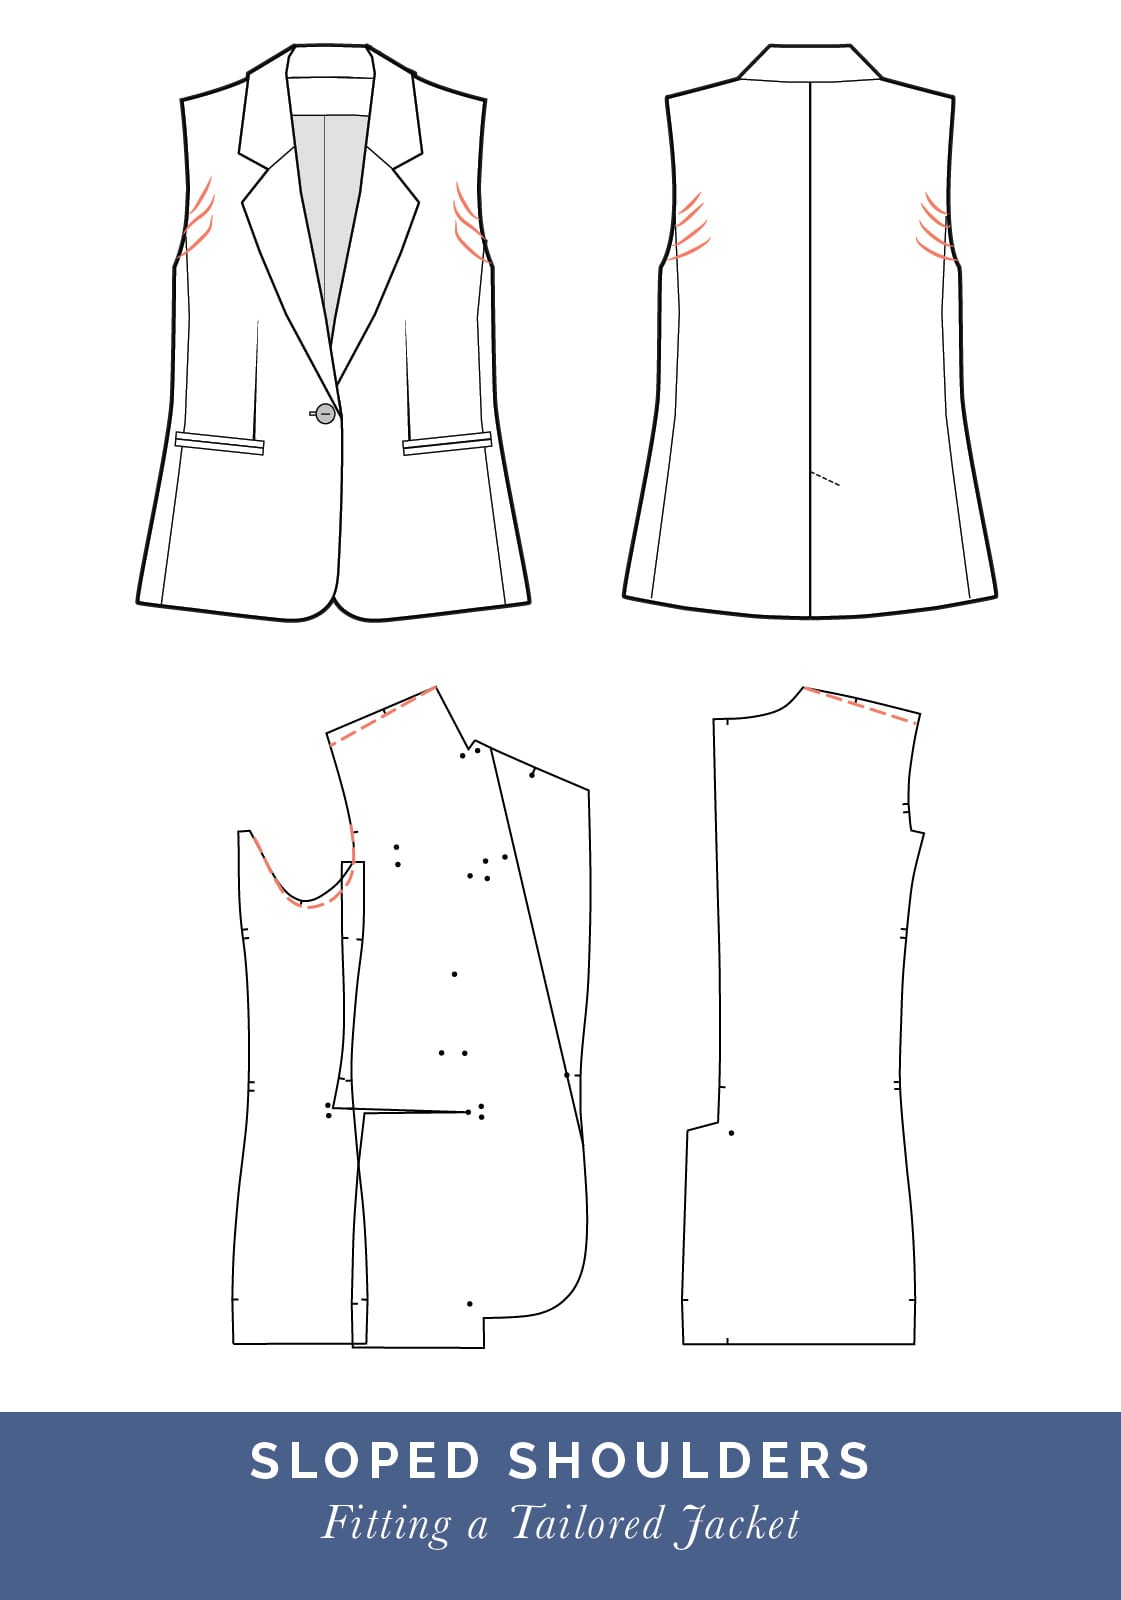 Sloped shoulder adjustment // How to fit a Tailored jacket or Blazer // Fit adjustment issues and fixes